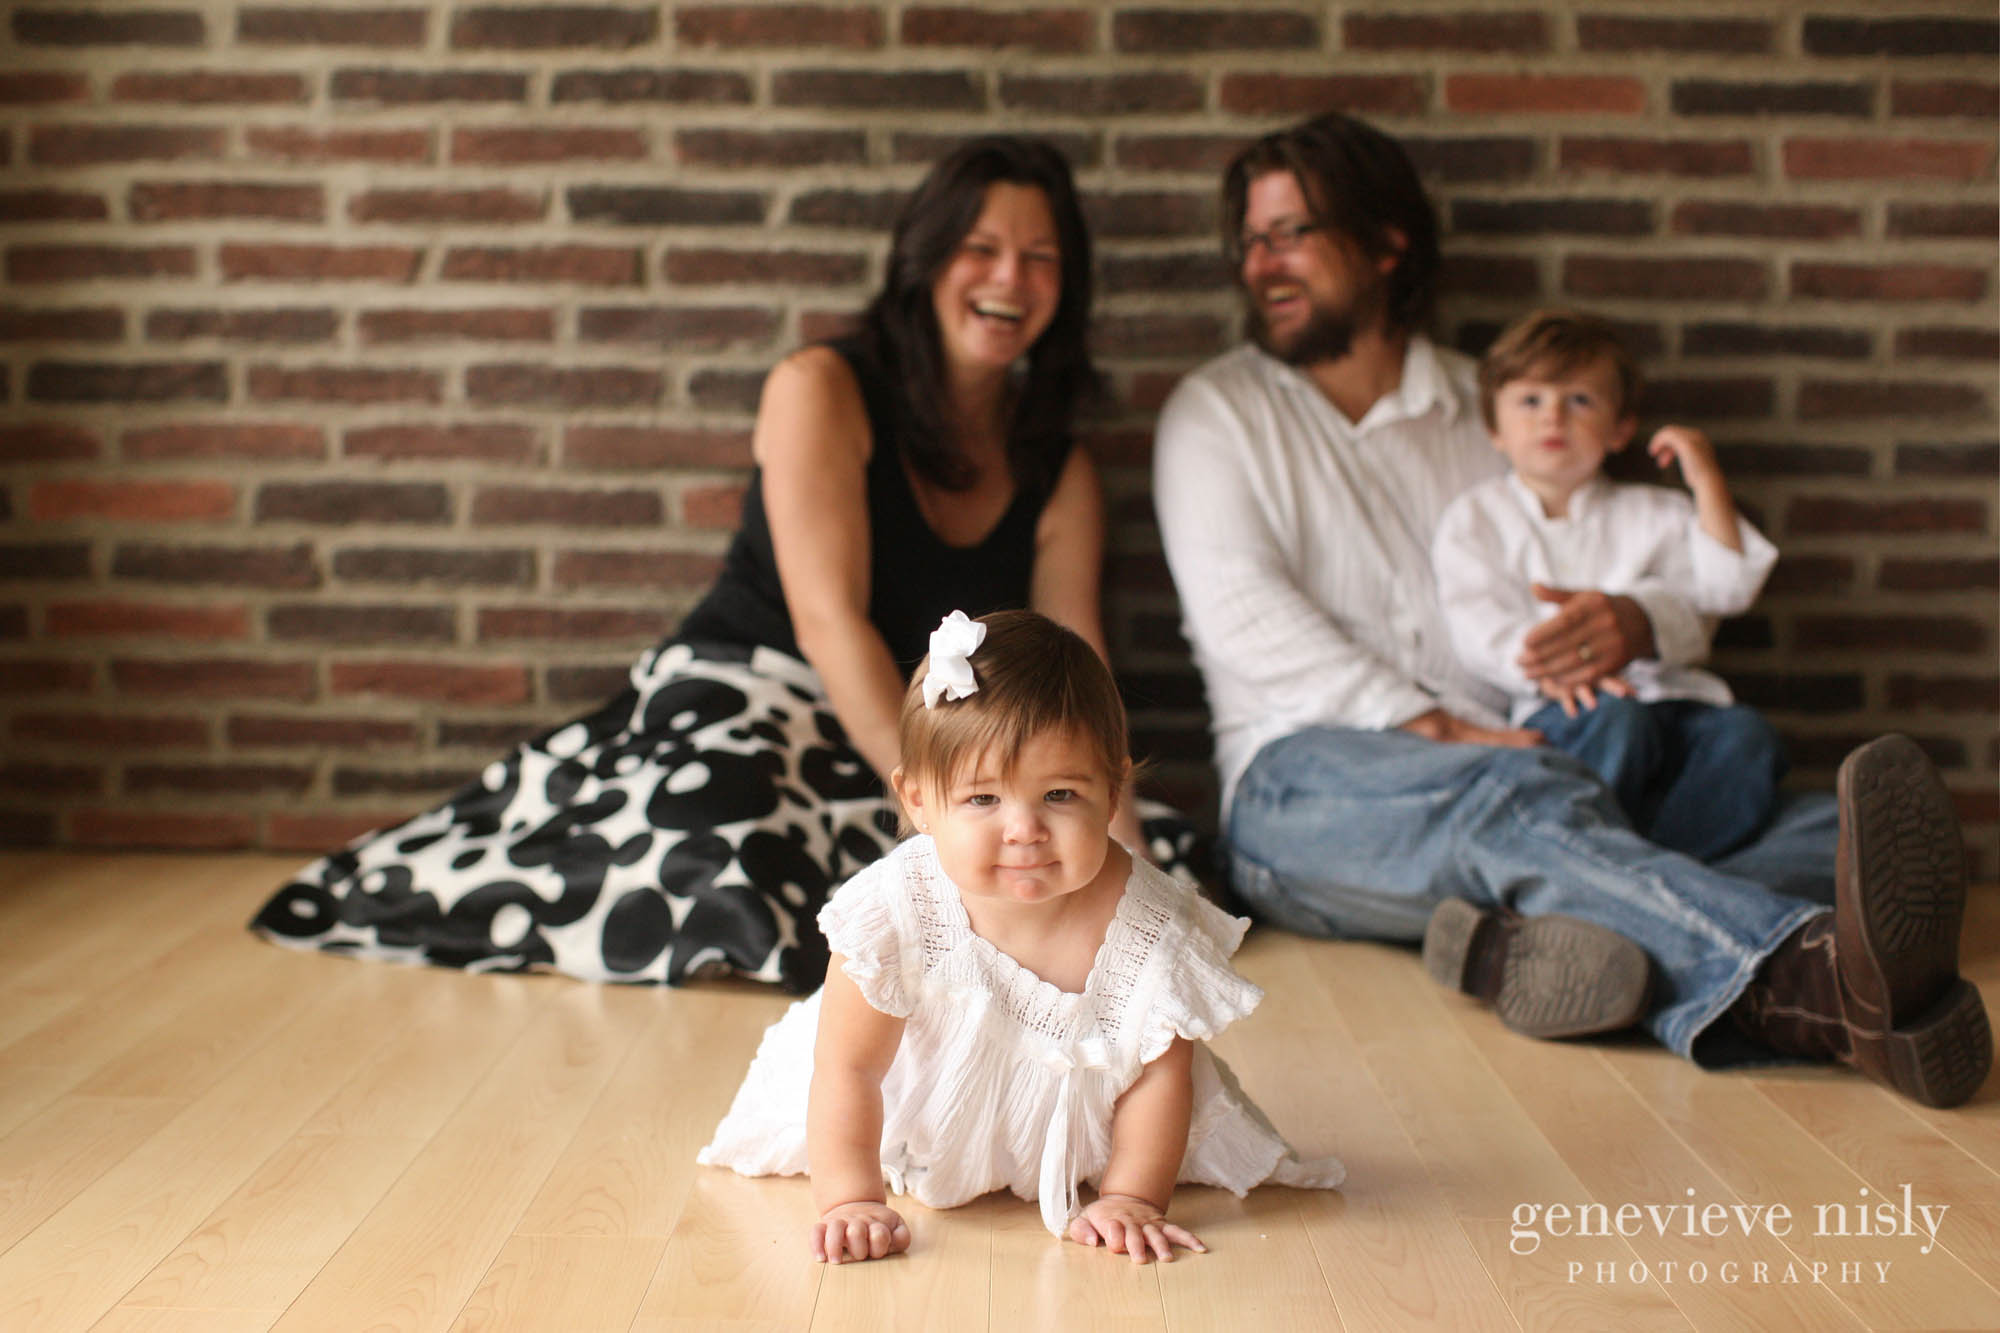 Copyright Genevieve Nisly Photography, Family, Green, Kids, Ohio, Portraits